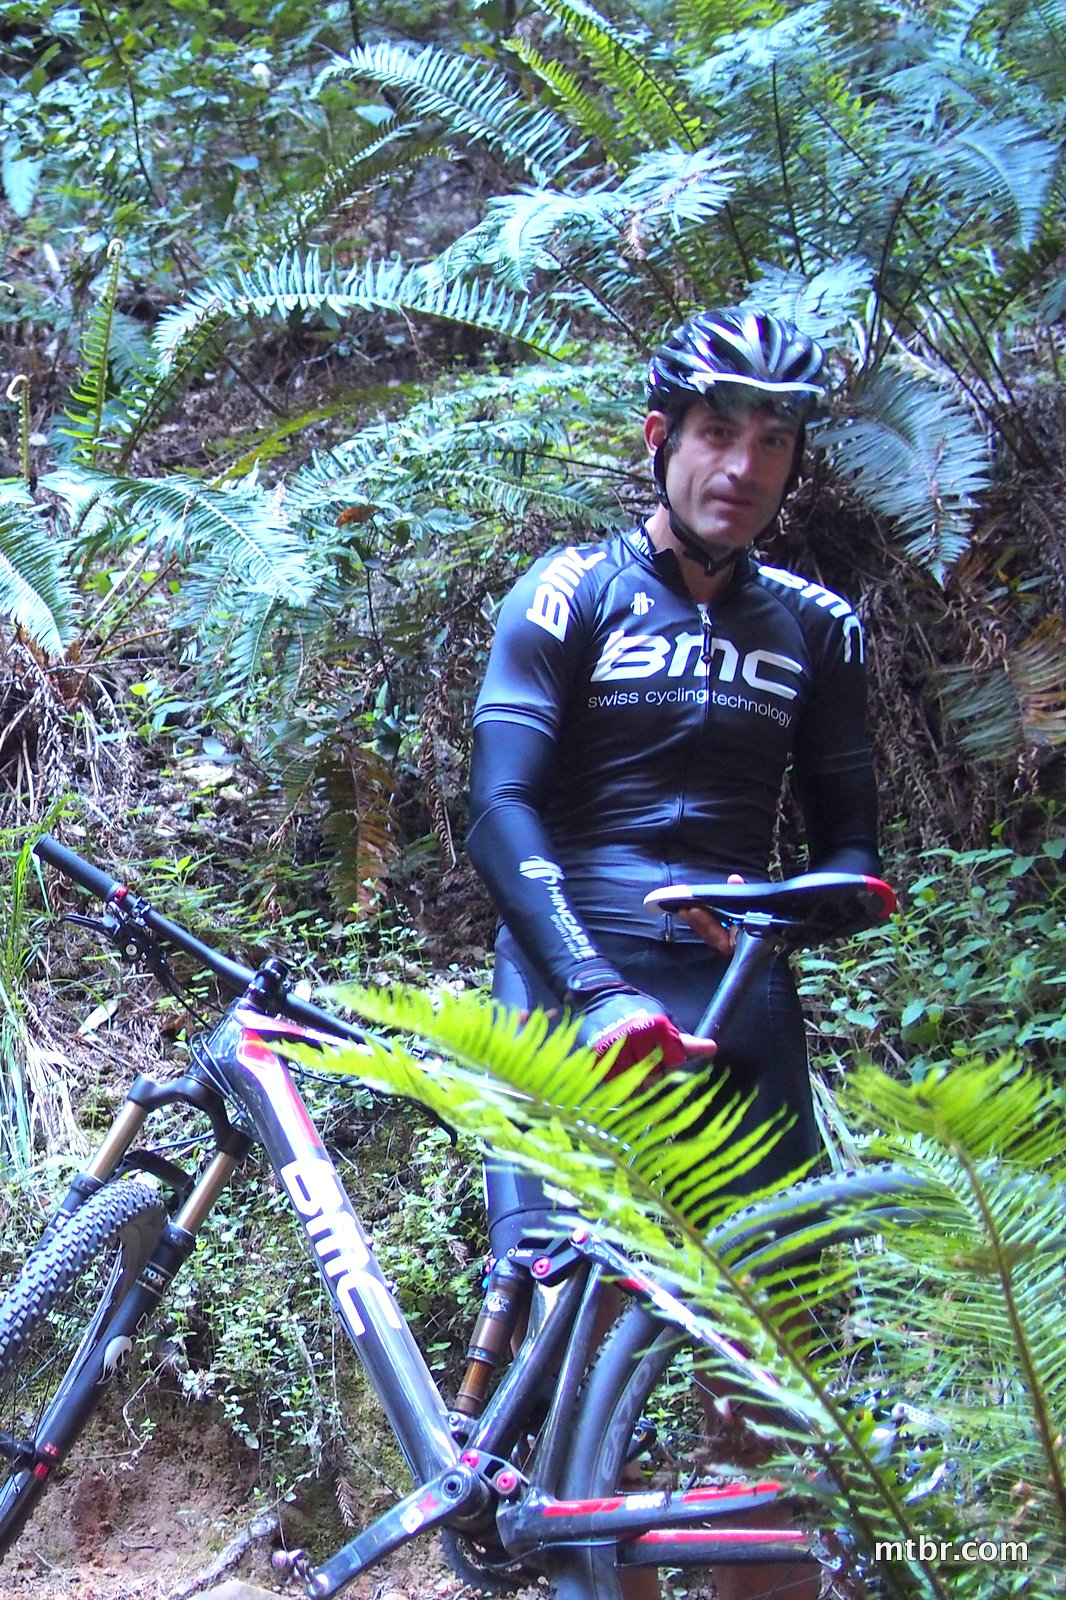 Hincapie in the fern redwood forest of Skeggs